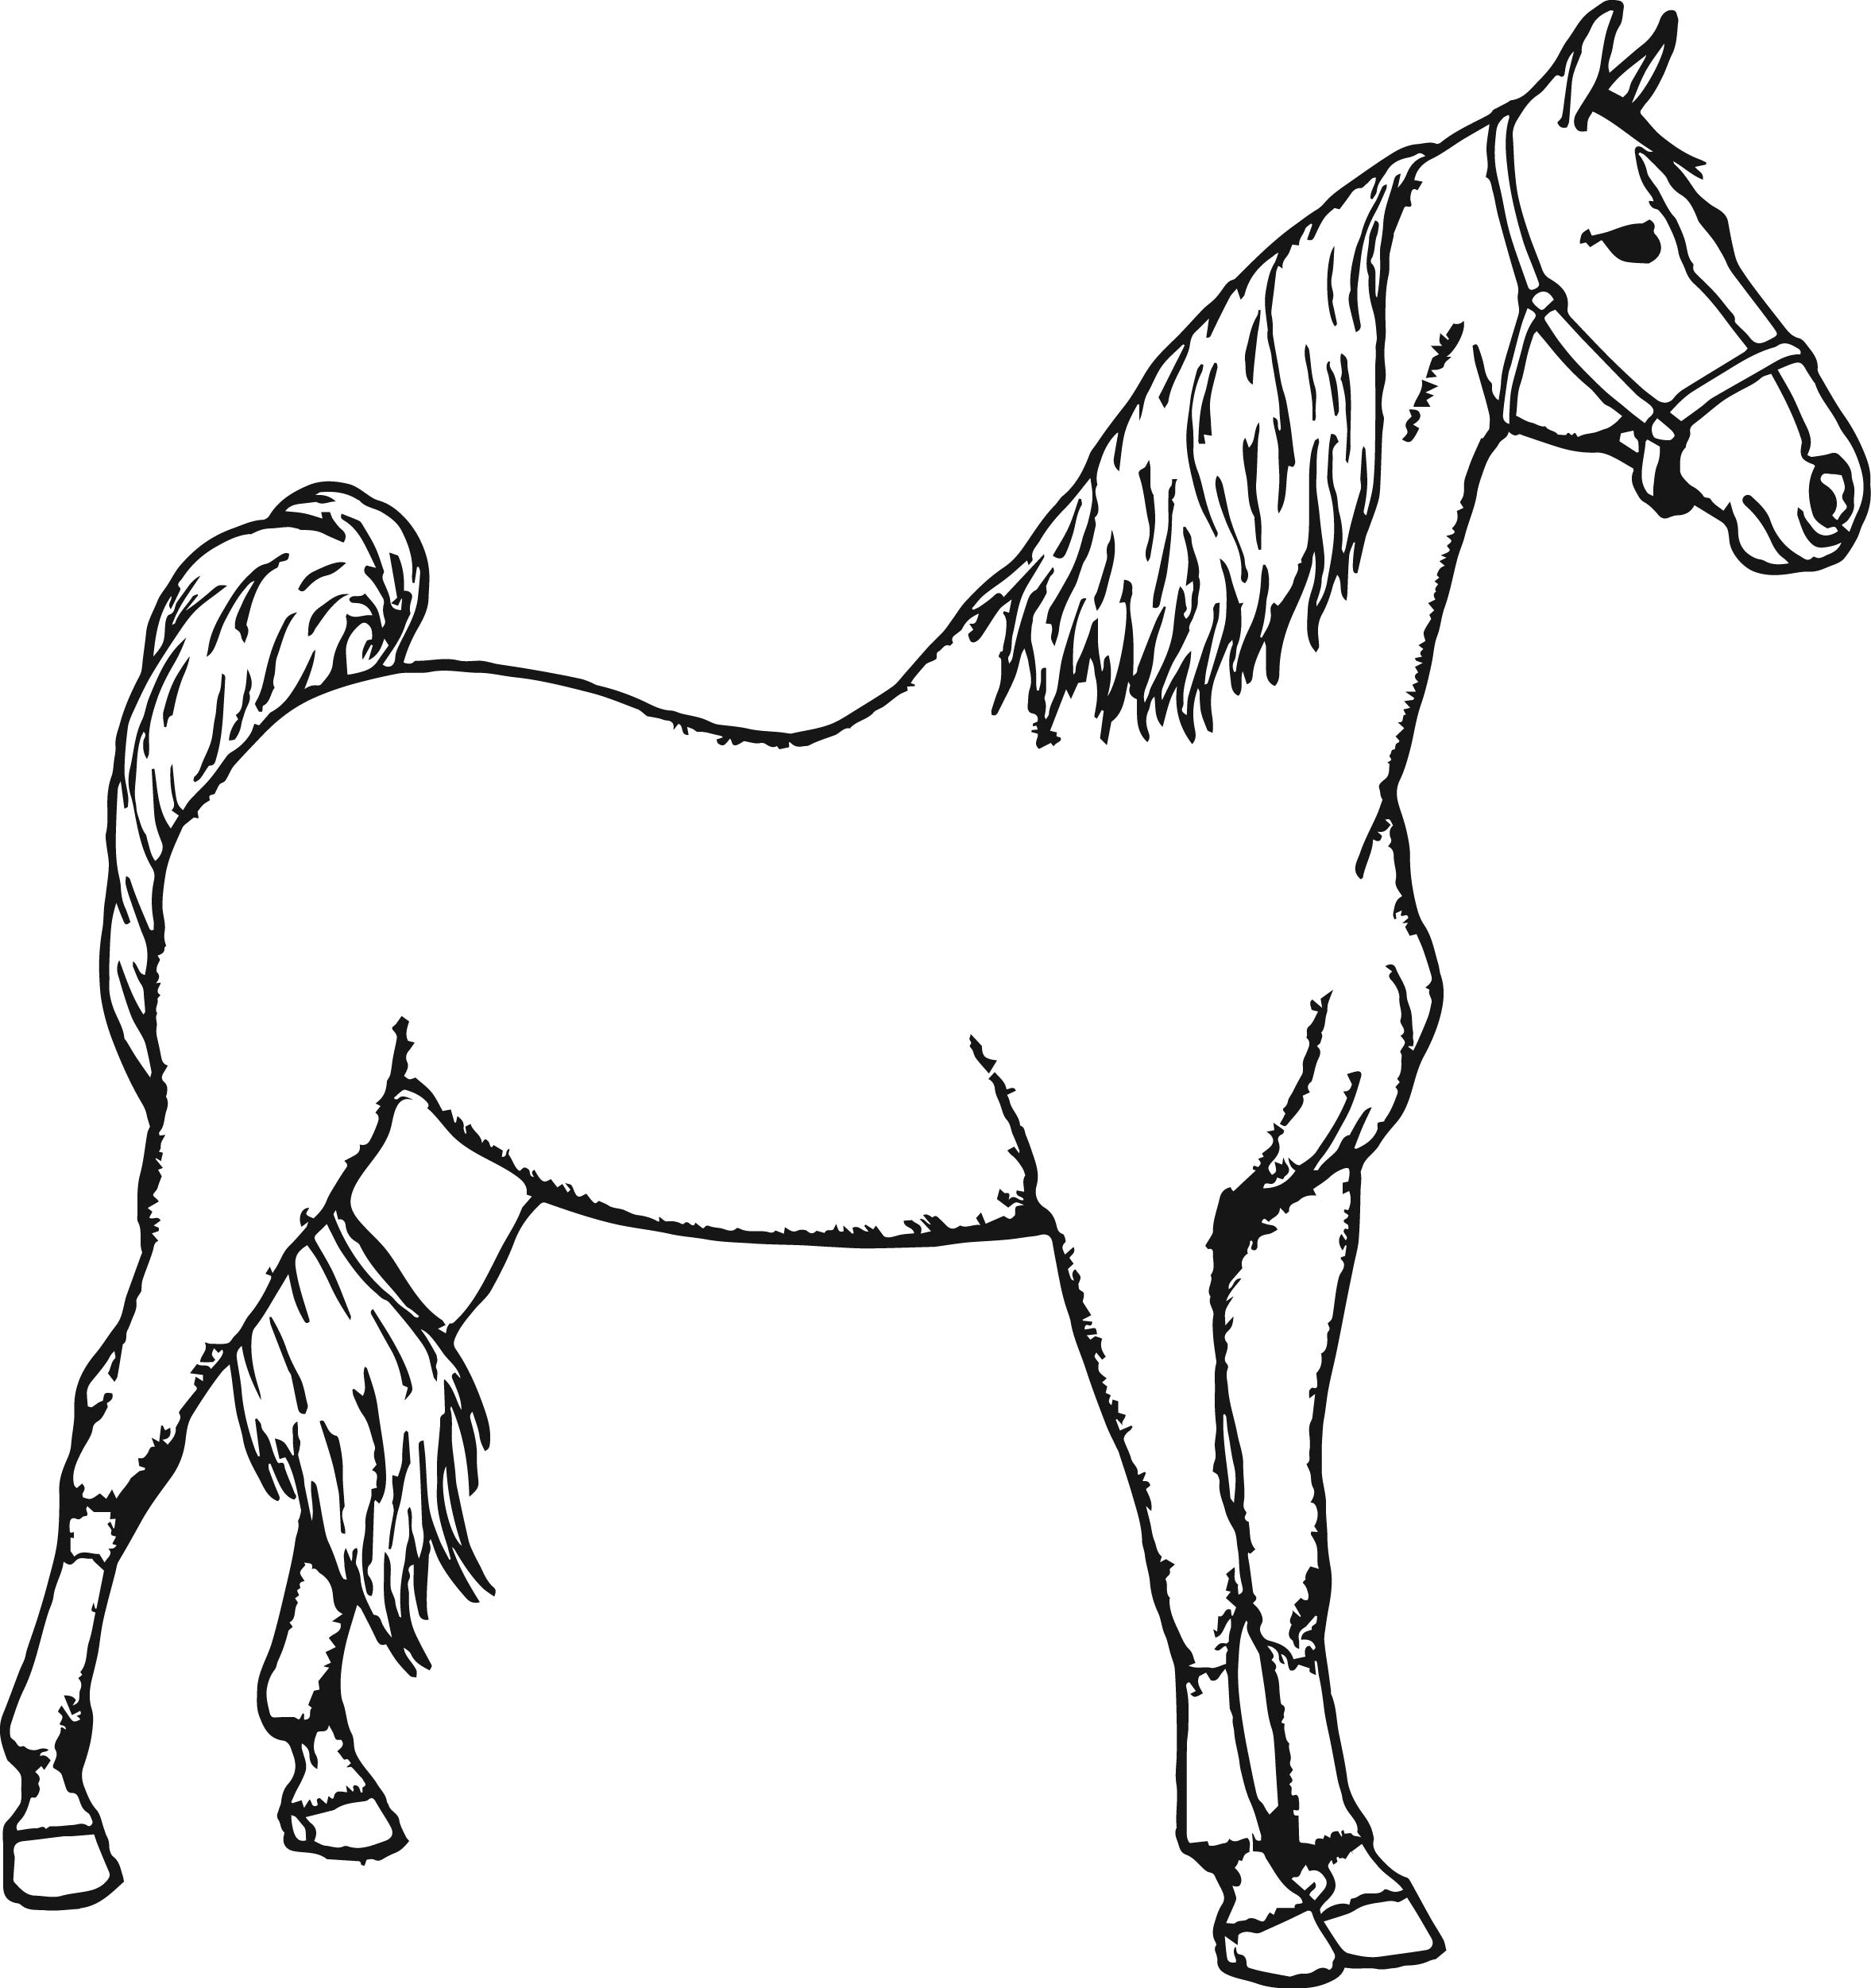 miniature horse coloring pages miniature horse coloring pages at getcoloringscom free miniature horse pages coloring